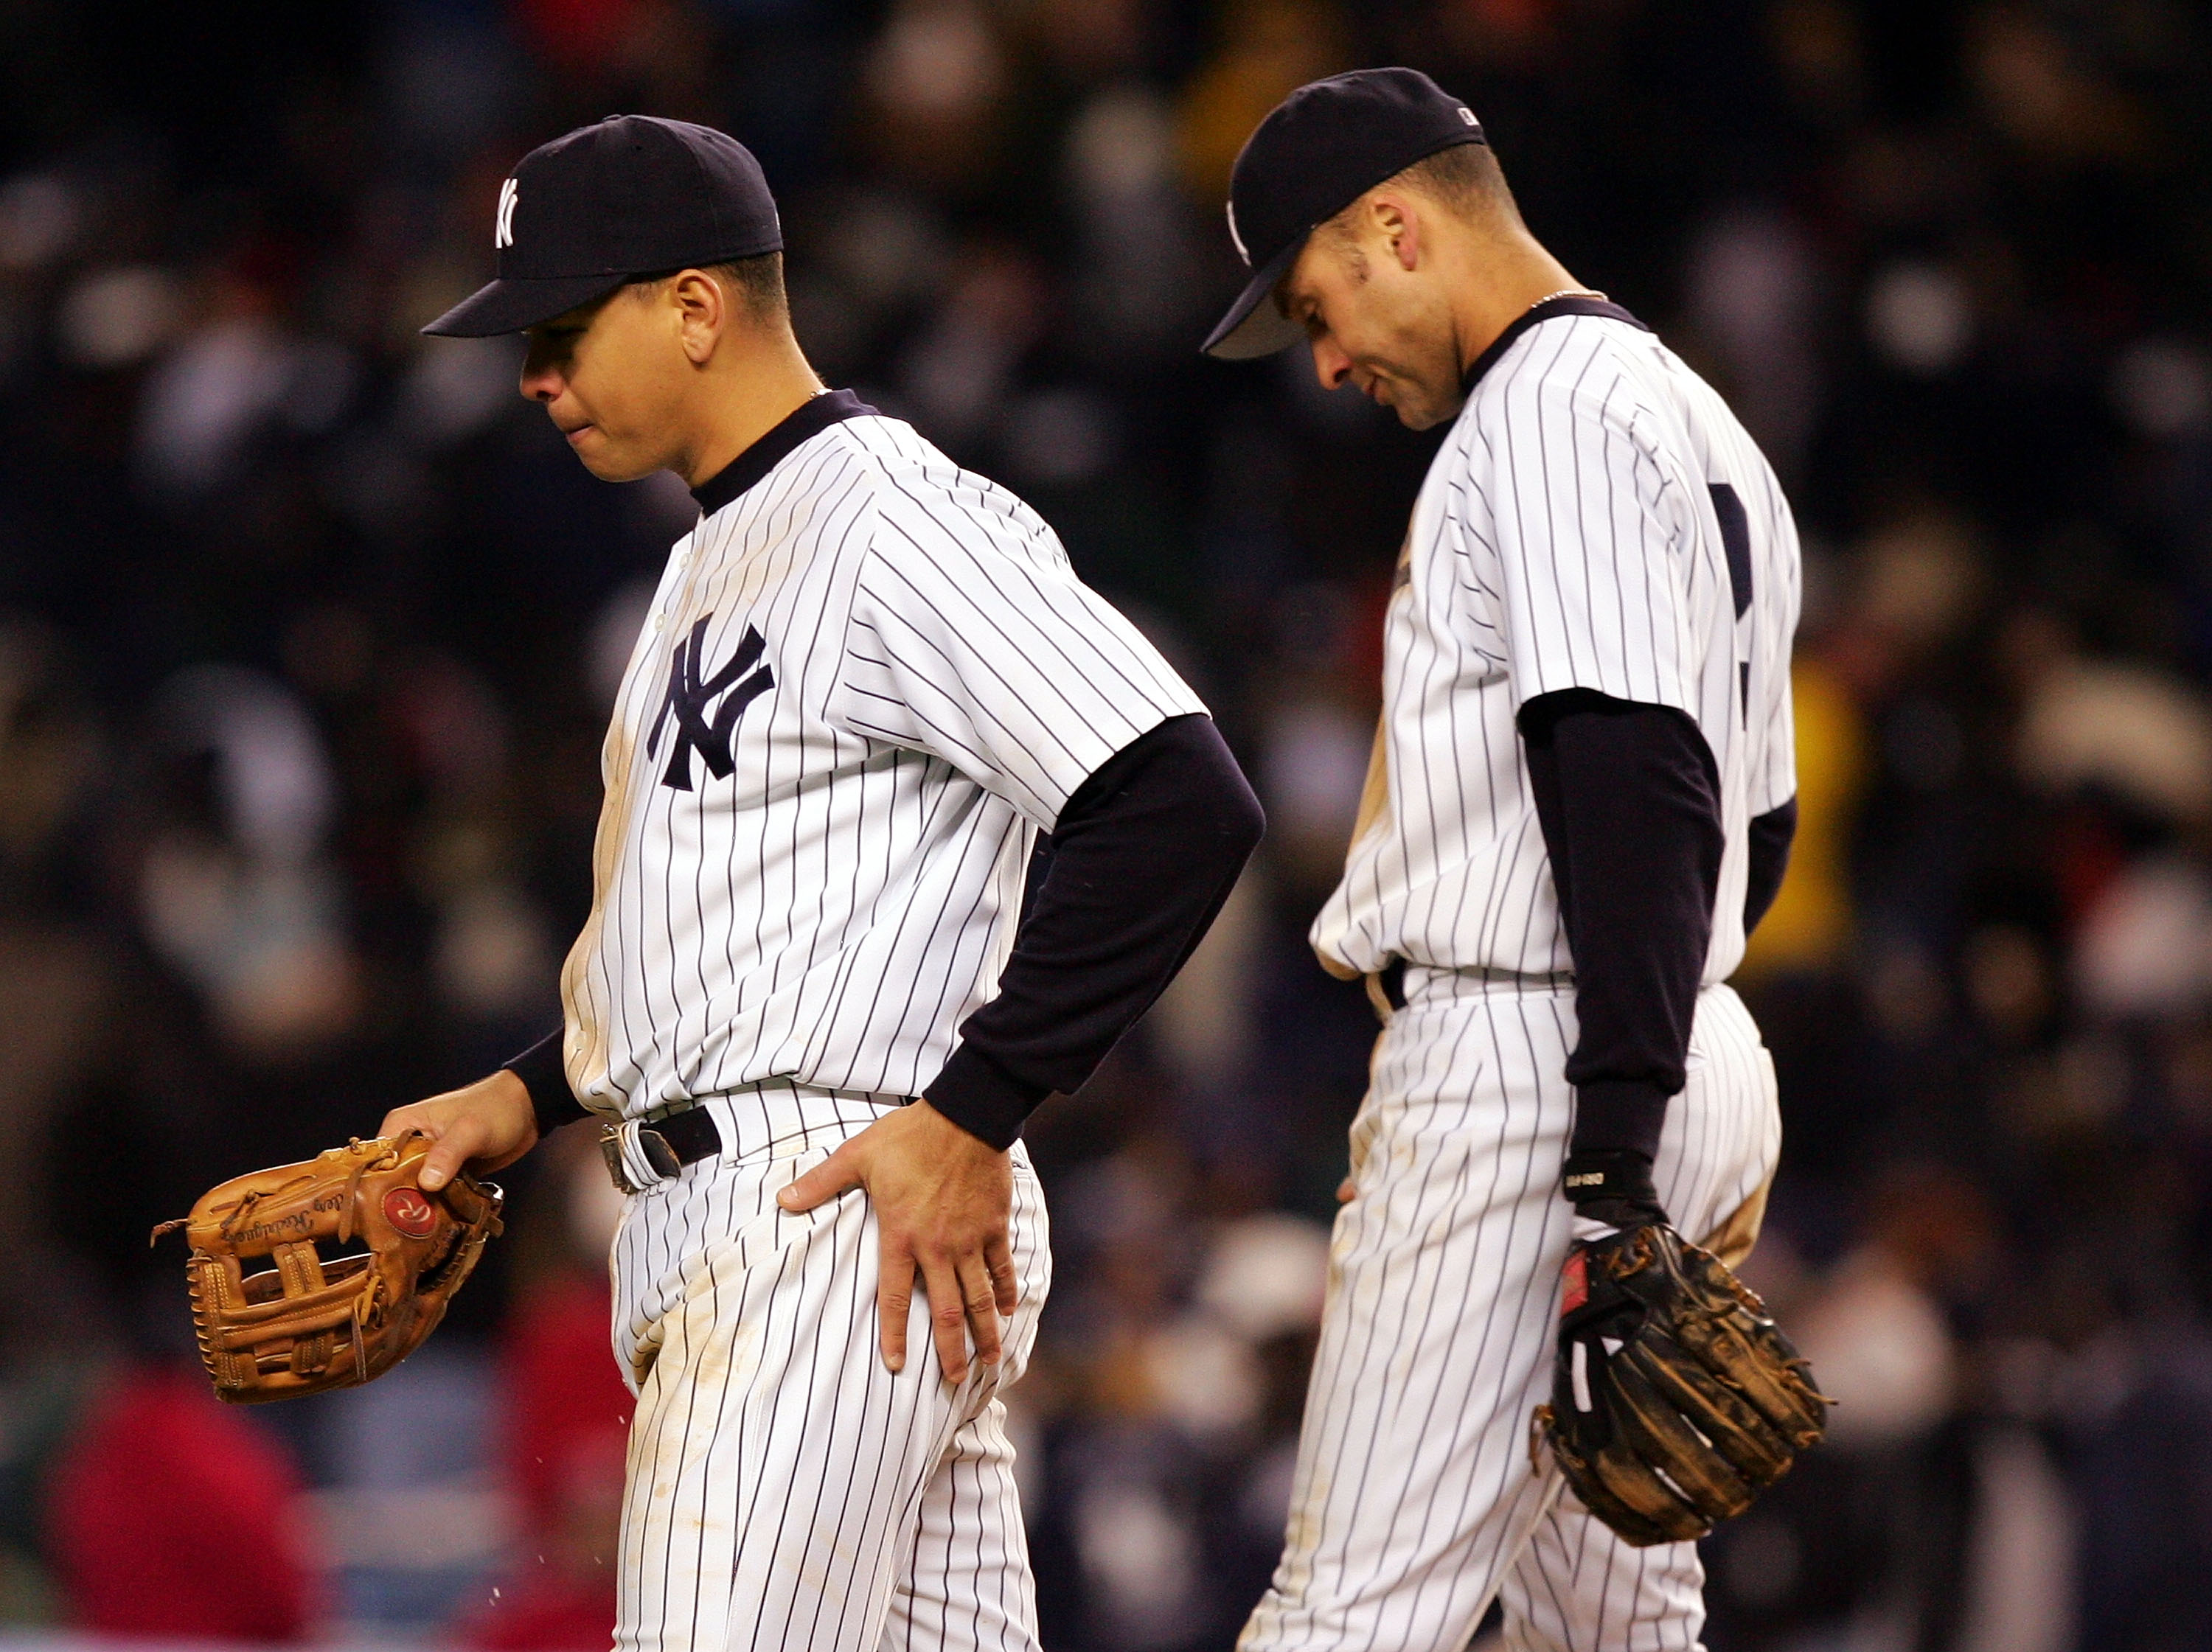 NEW YORK - OCTOBER 20:  Alex Rodriguez #13 and Derek Jeter #2 of the New York Yankees walk back to the dugout after the end of the eighth inning against the Boston Red Sox during game seven of the American League Championship Series on October 20, 2004 at